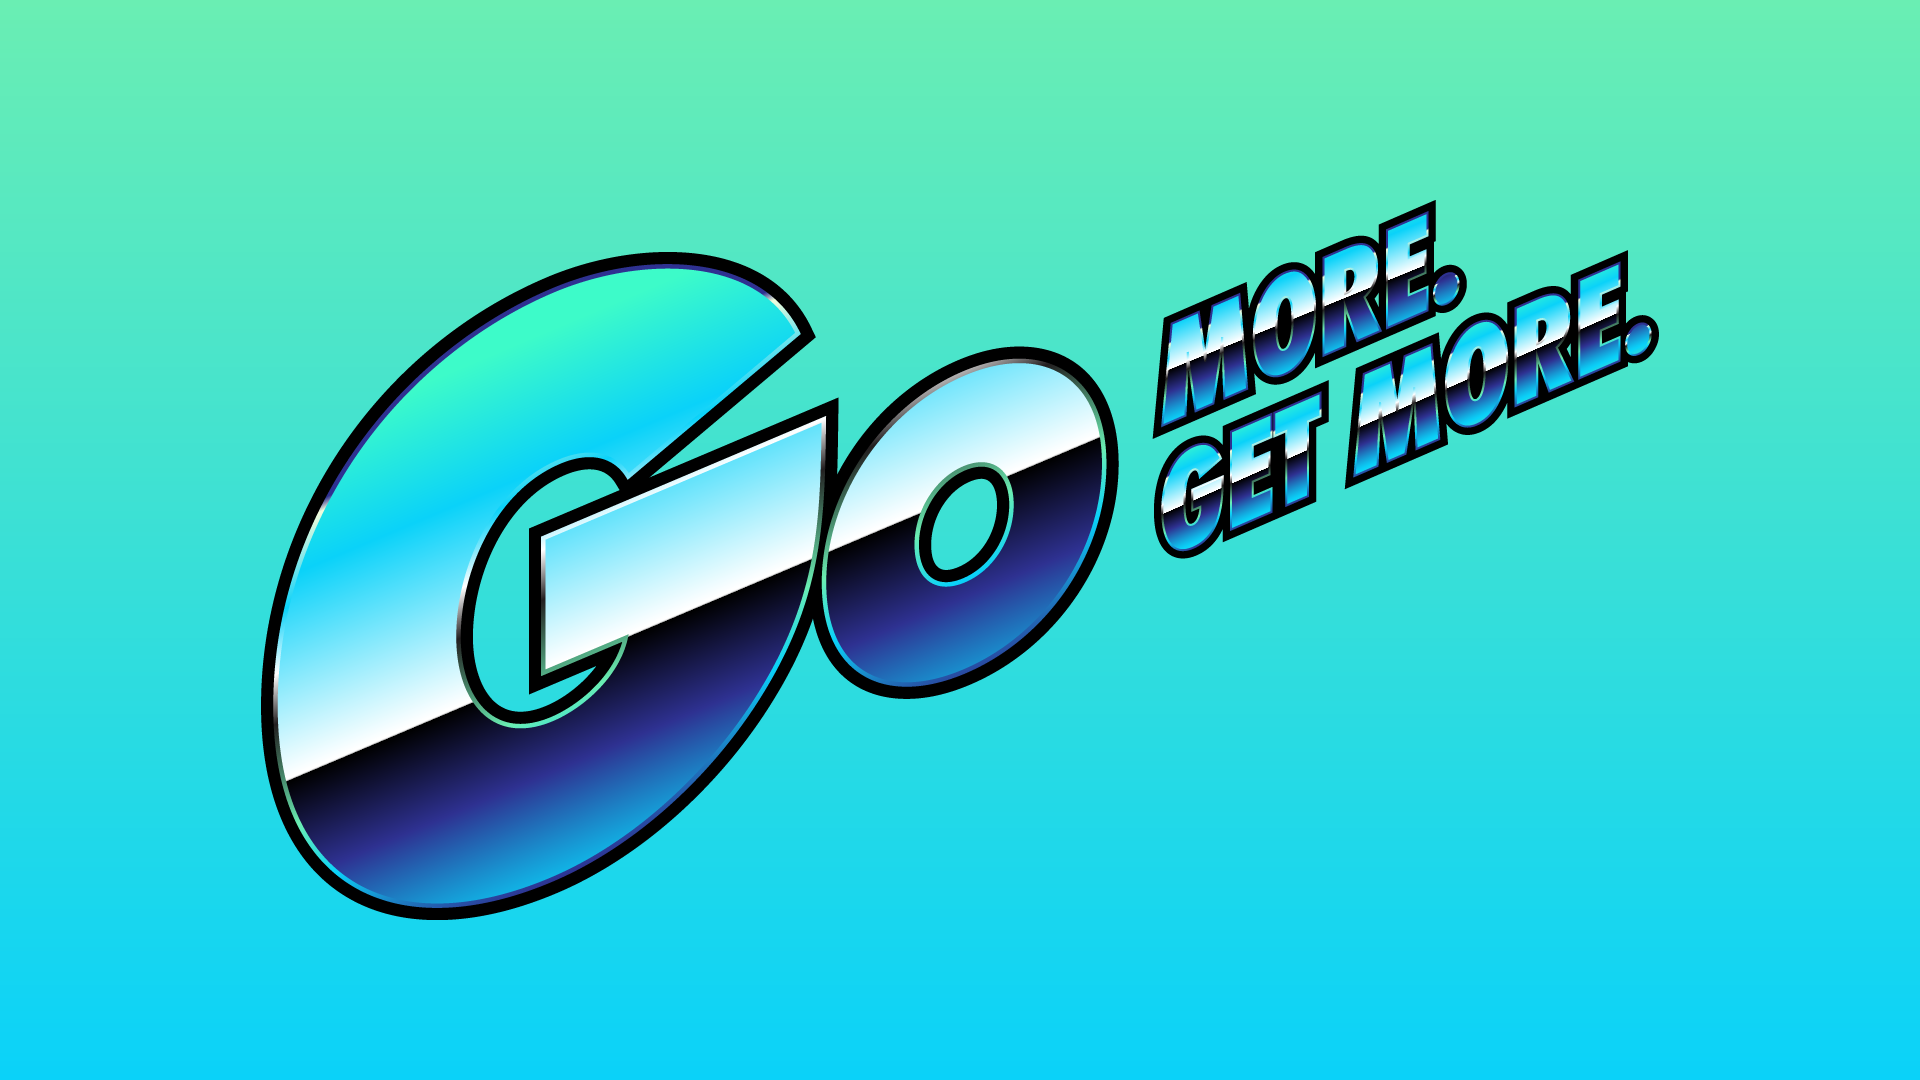 GO-MORE-GET-MORE.png